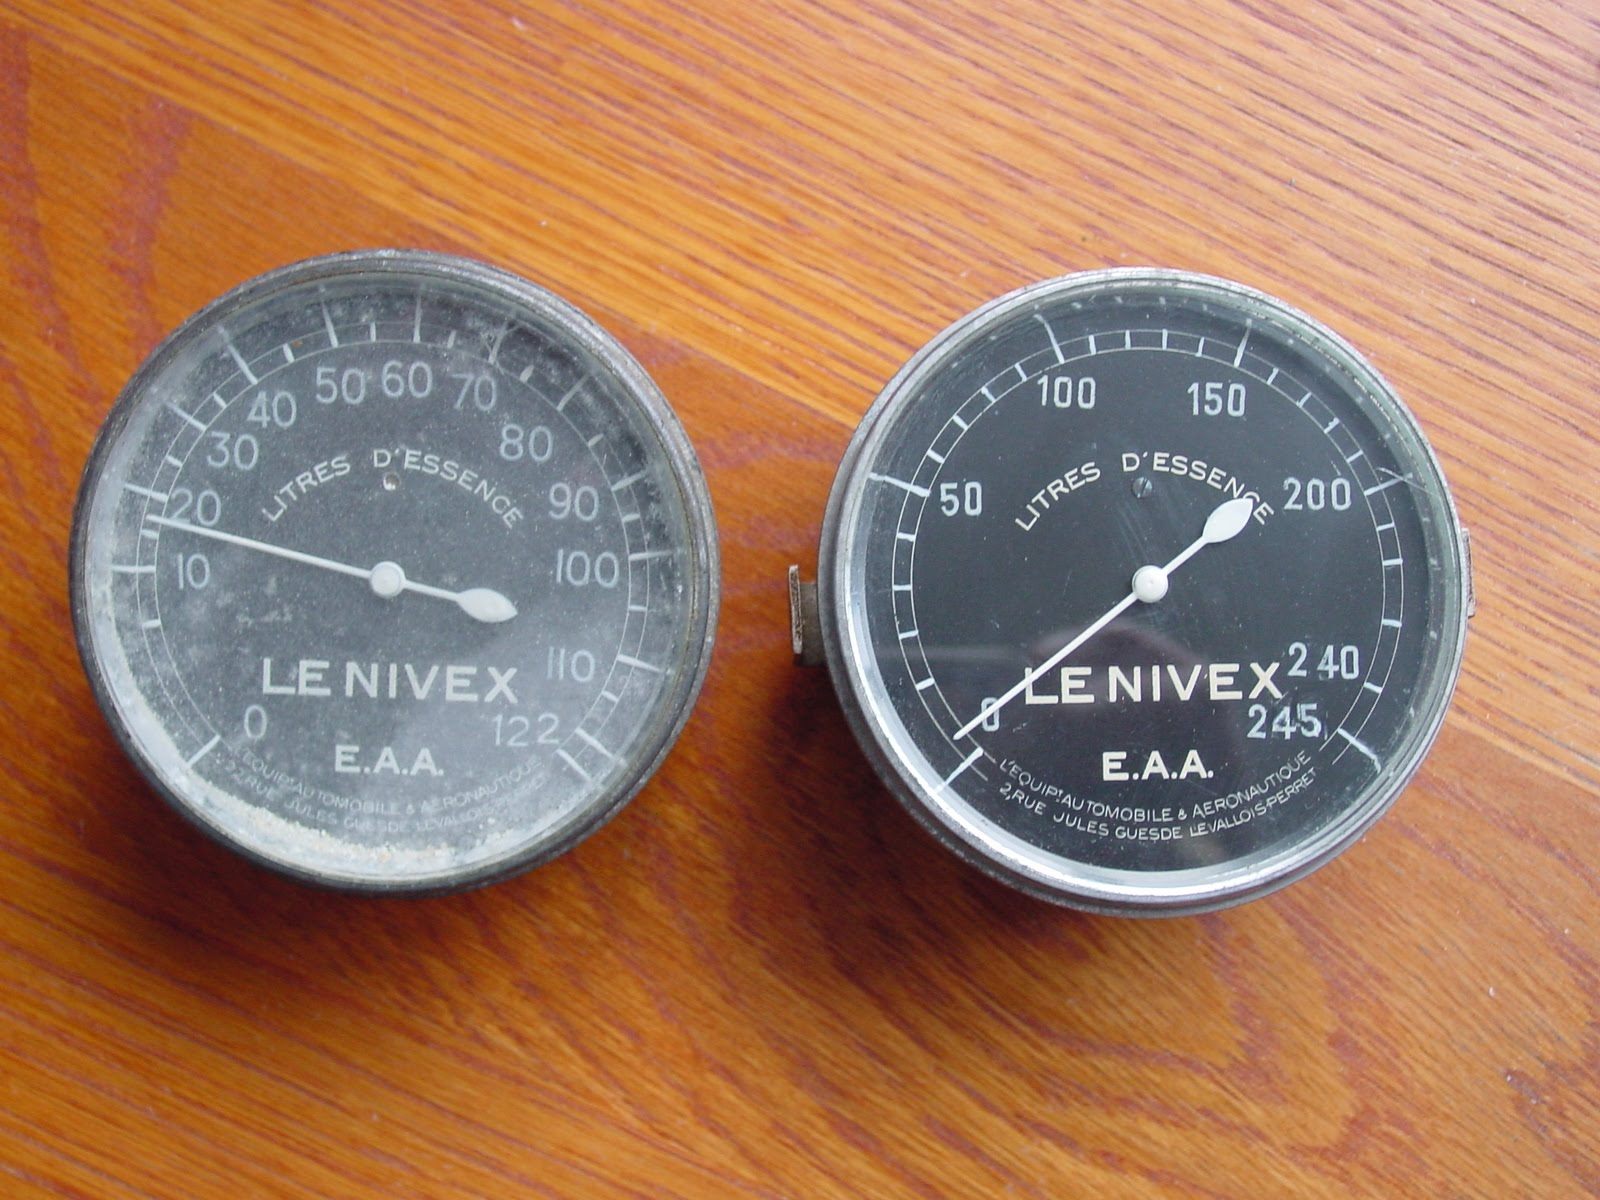 This Time A Le Nivex Gauge In Superb Condition It Can Pretty Much Go Straight Onto The Car Theres A Second One Too Ill Probably Sell That Once Im